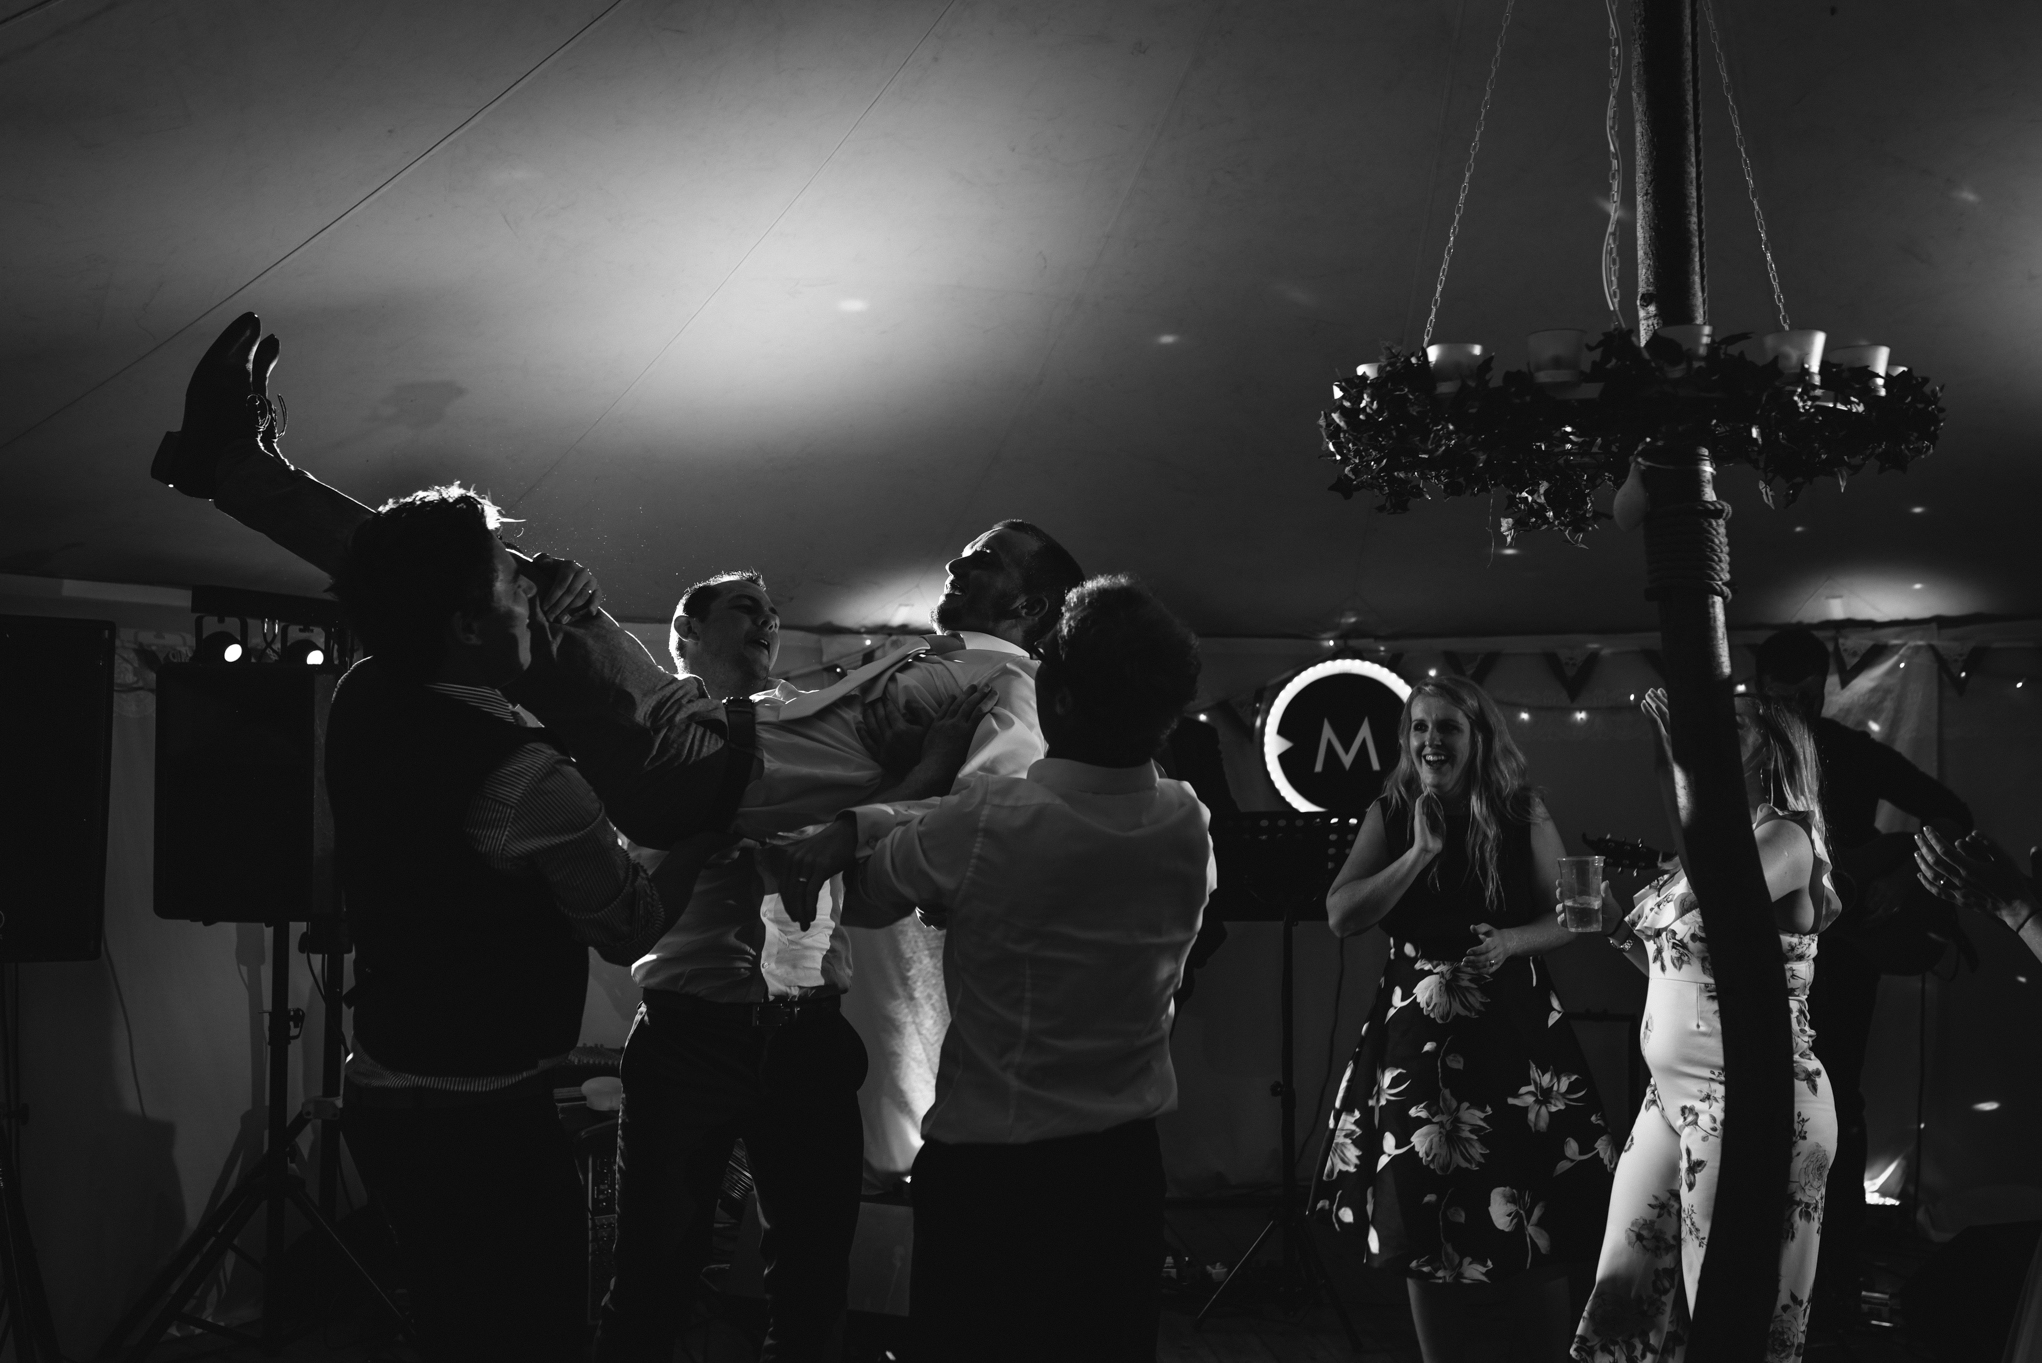 Copy of Groom Being Lifted Up at Wedding Party